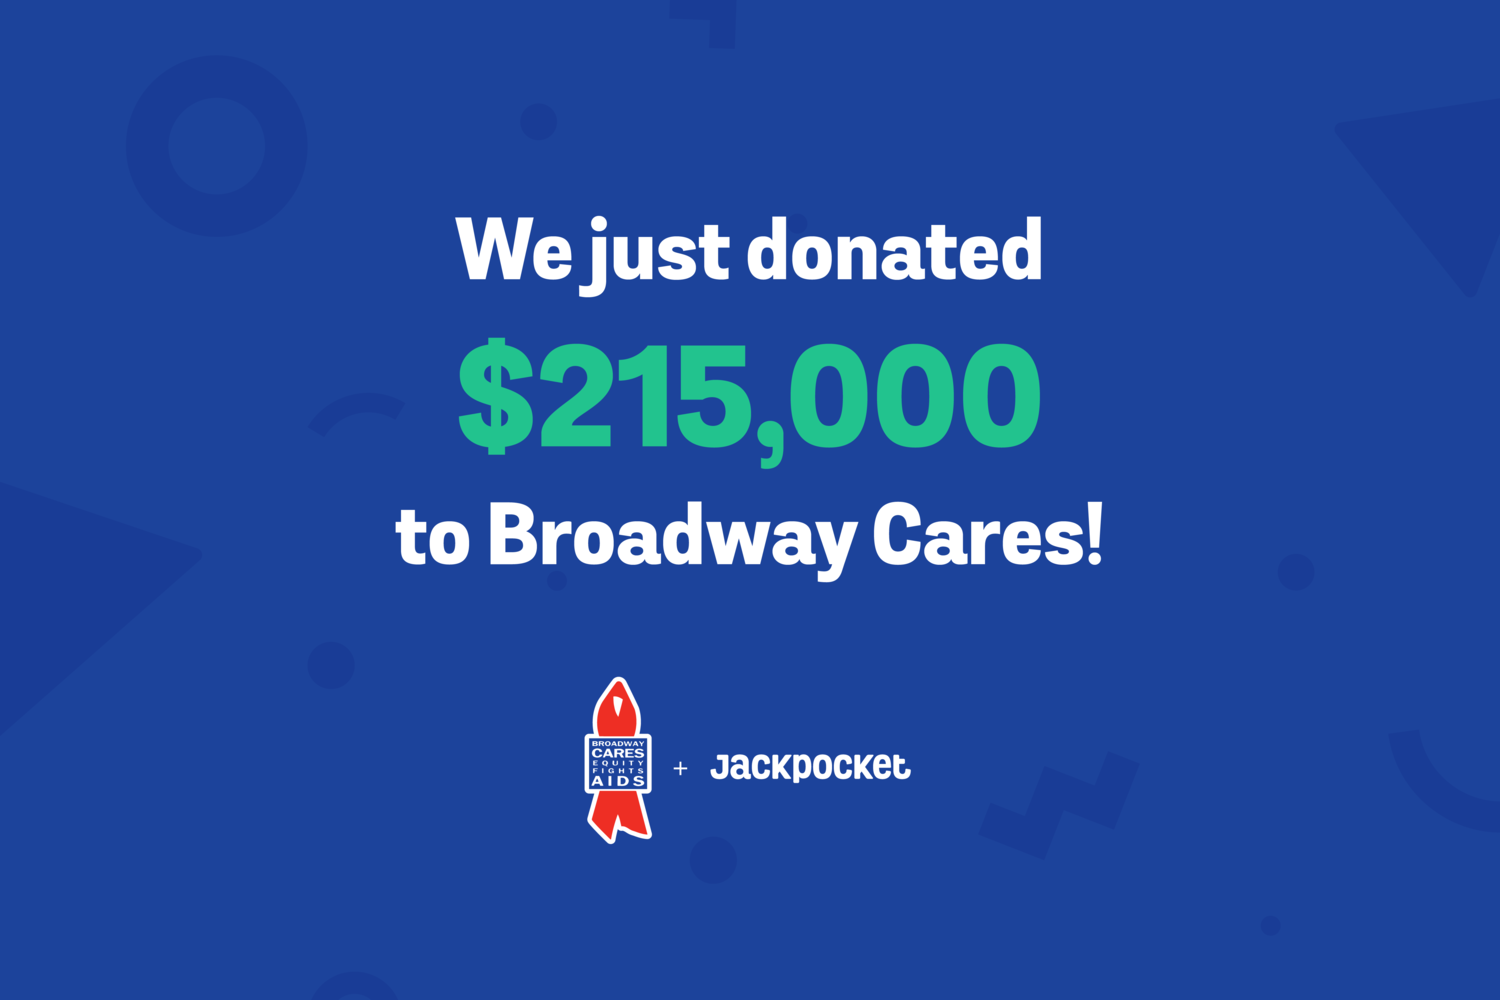 Jackpocket lottery app donates $215,000 to Broadway Cares